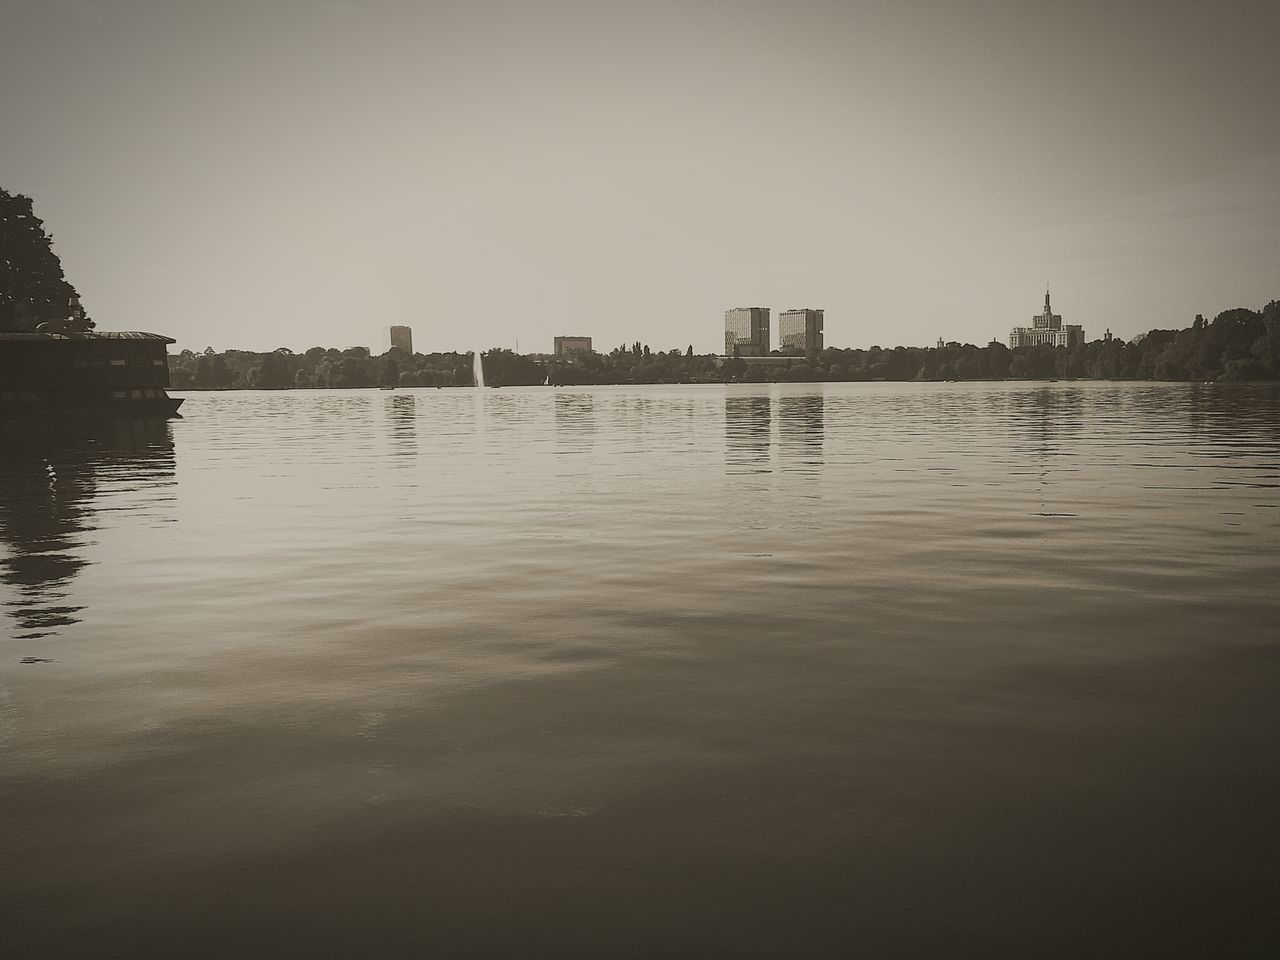 architecture, building exterior, city, skyscraper, water, built structure, waterfront, reflection, cityscape, river, outdoors, no people, clear sky, urban skyline, sky, nature, modern, day